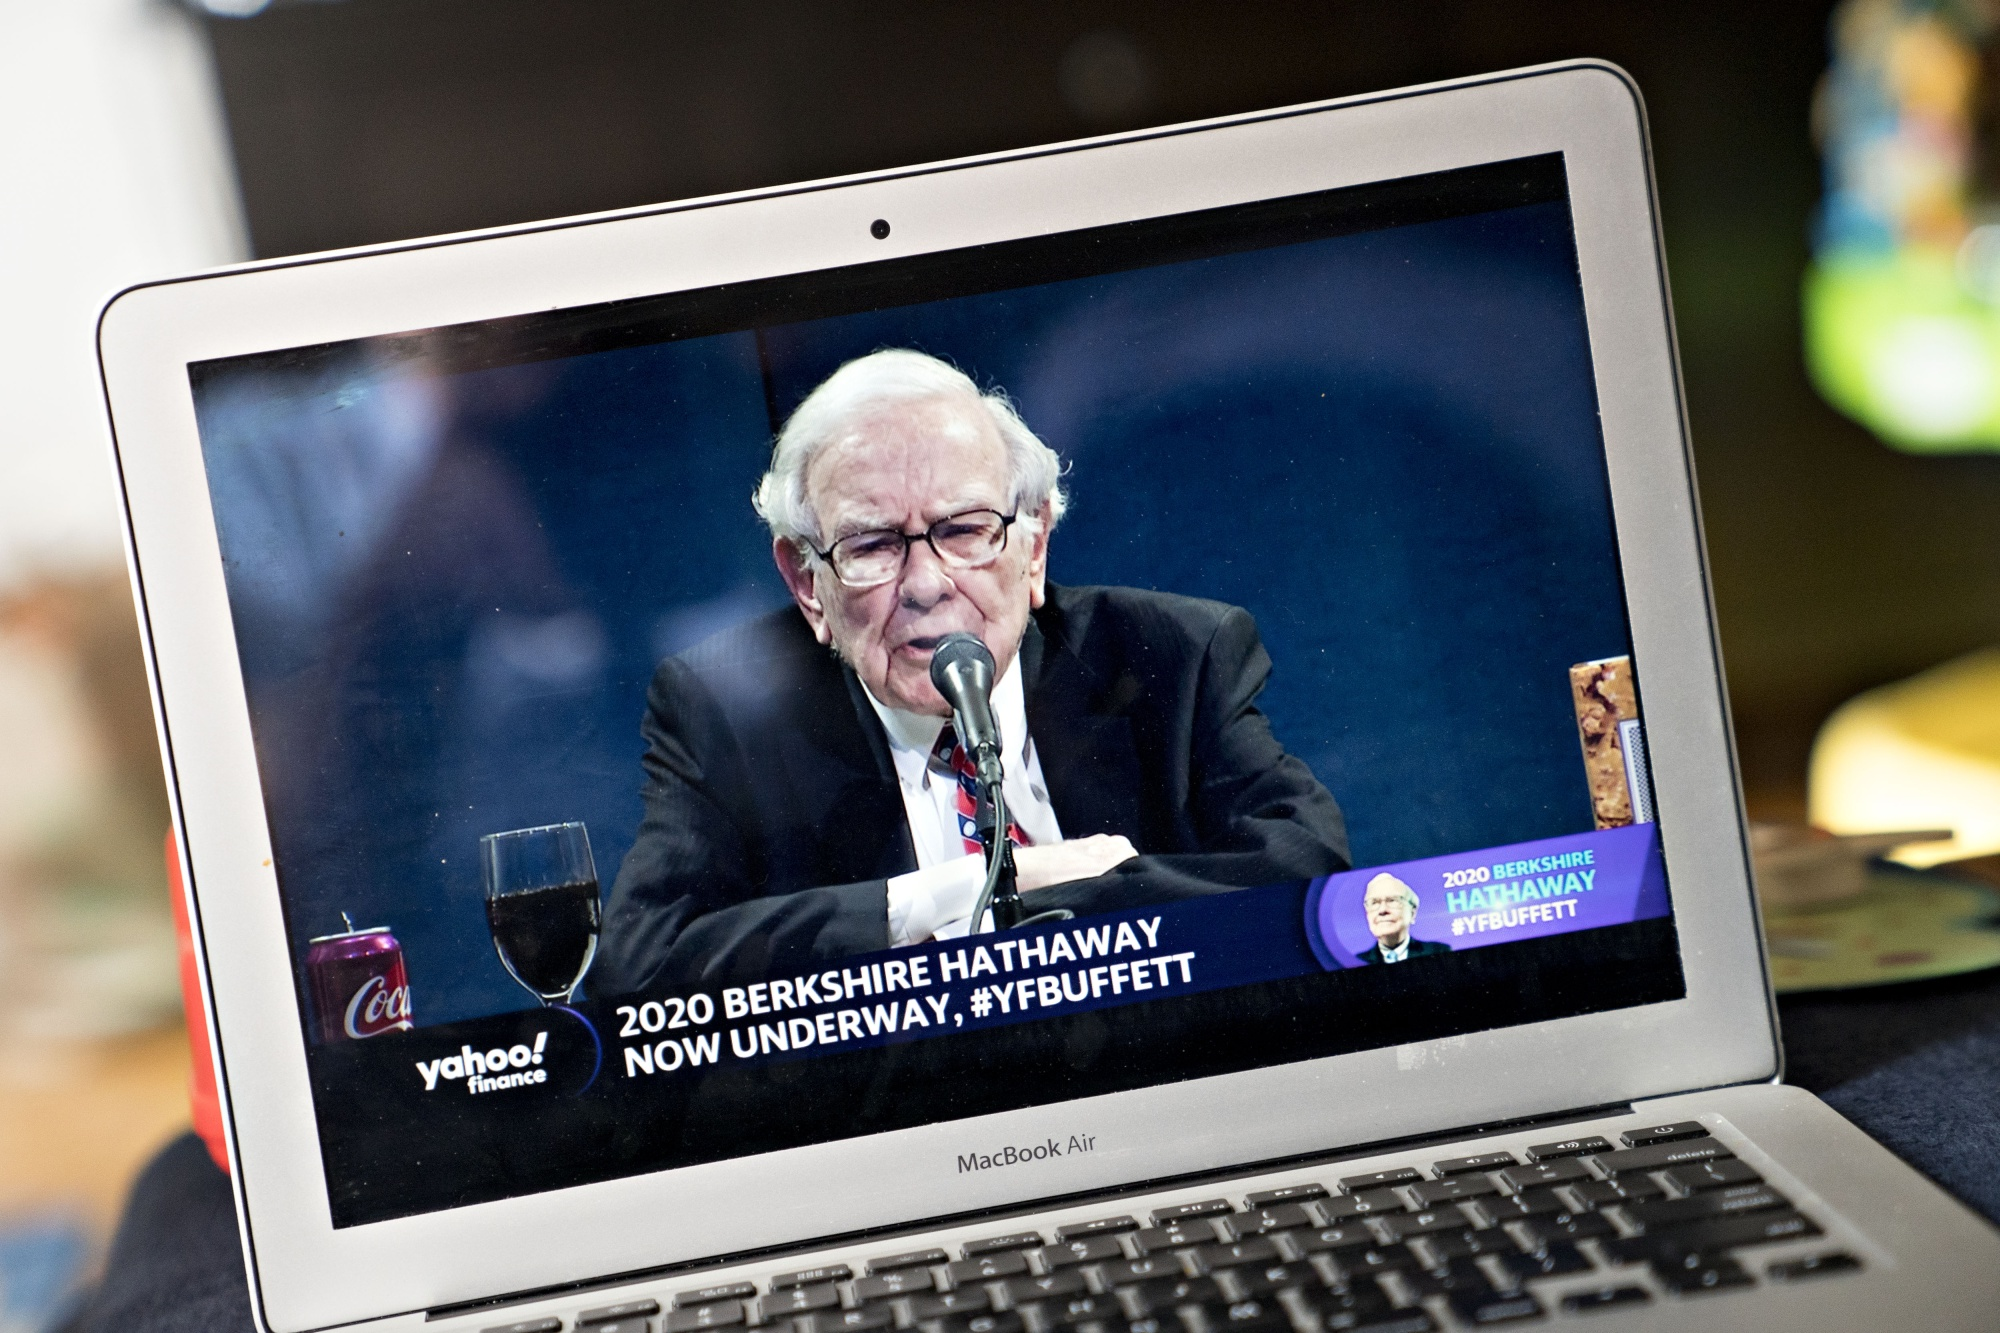 Warren Buffett speaks during the virtual Berkshire Hathaway annual shareholders meeting on May 2, 2020.